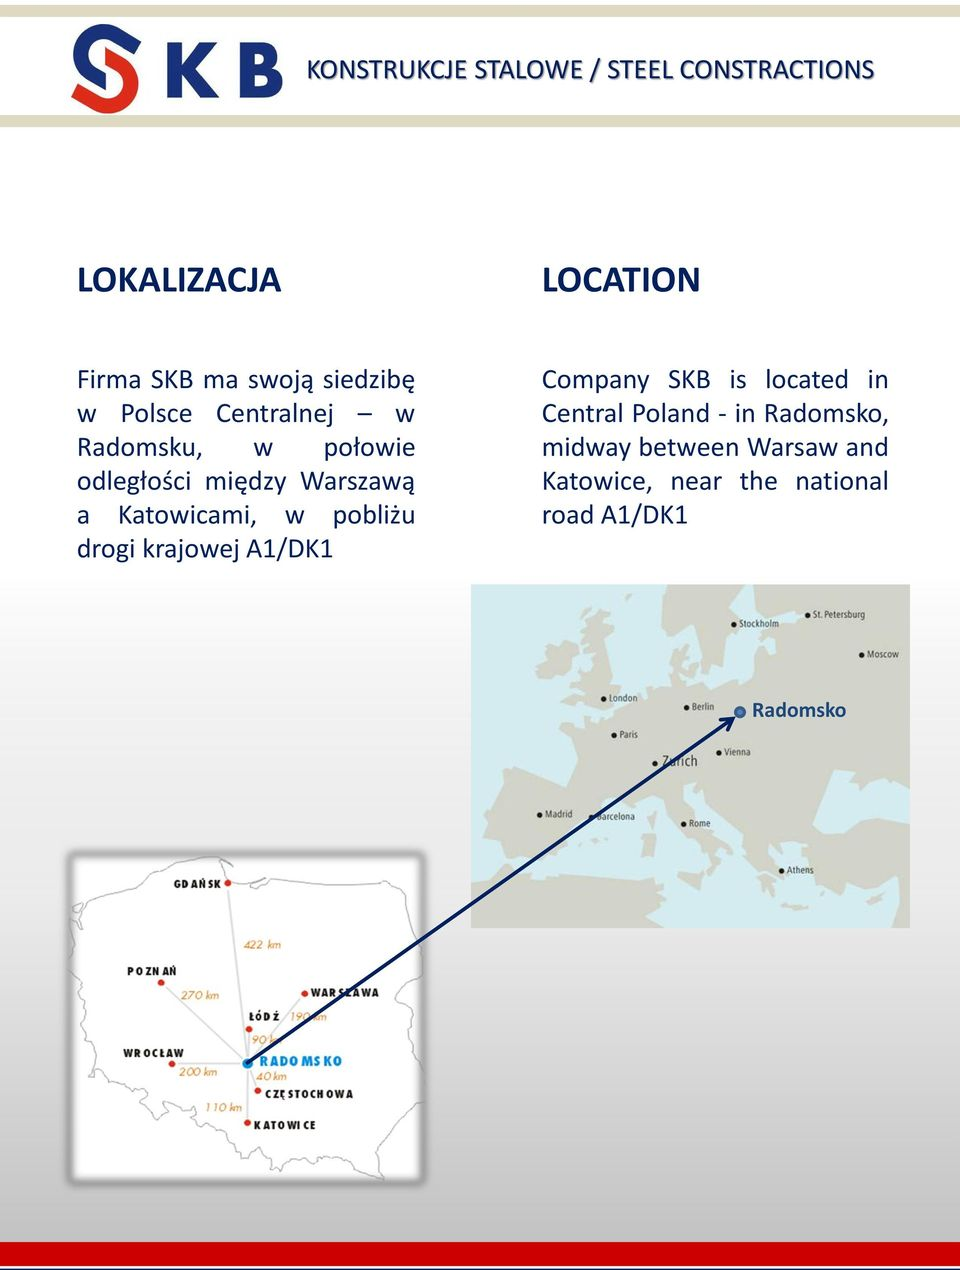 drogi krajowej A1/DK1 Company SKB is located in Central Poland - in